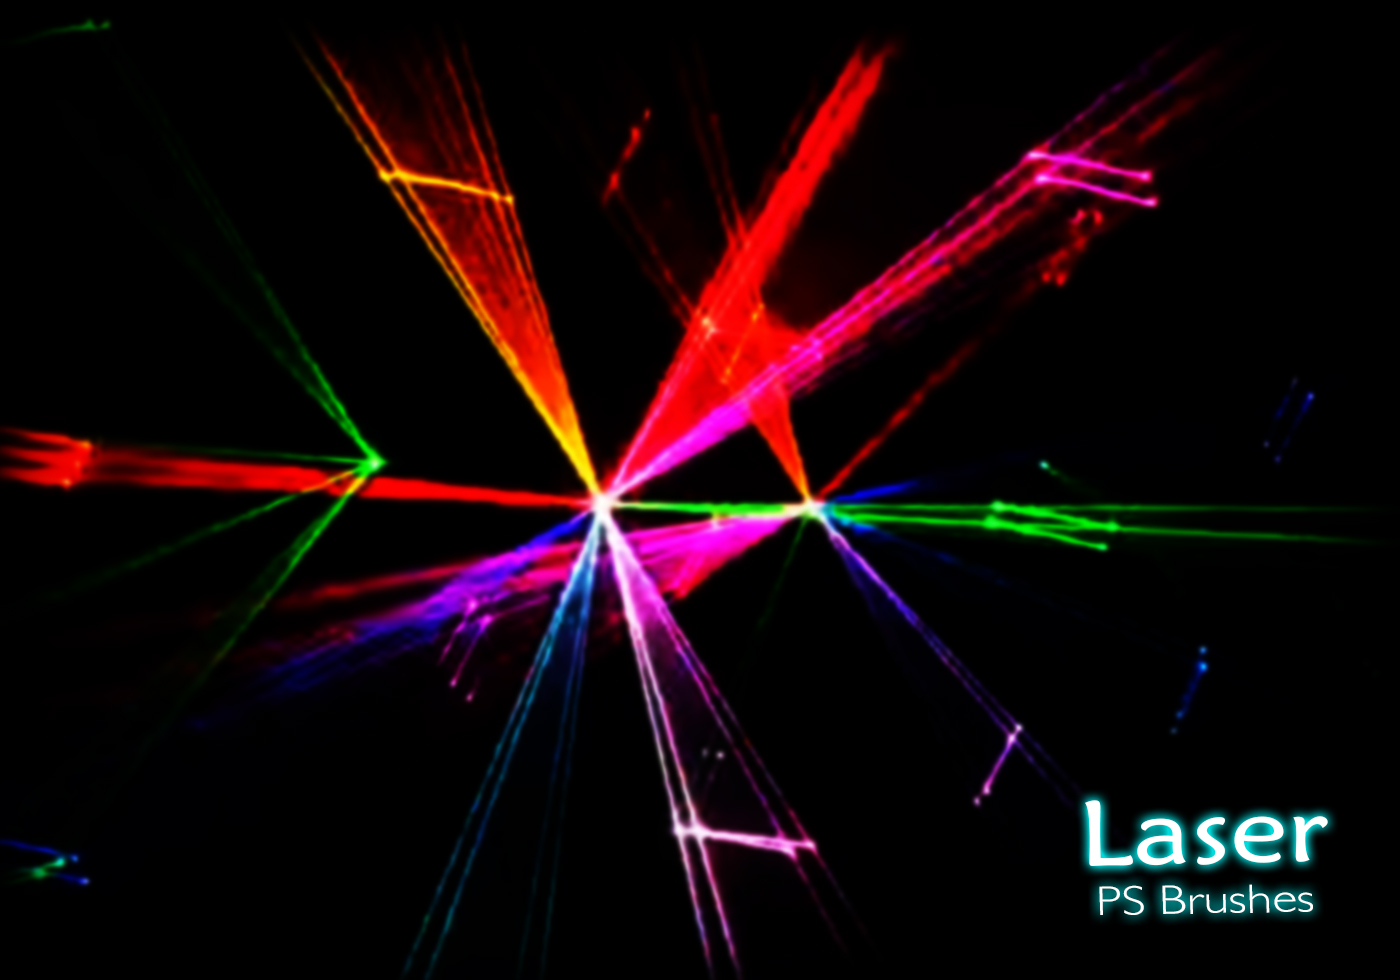 laser files download show